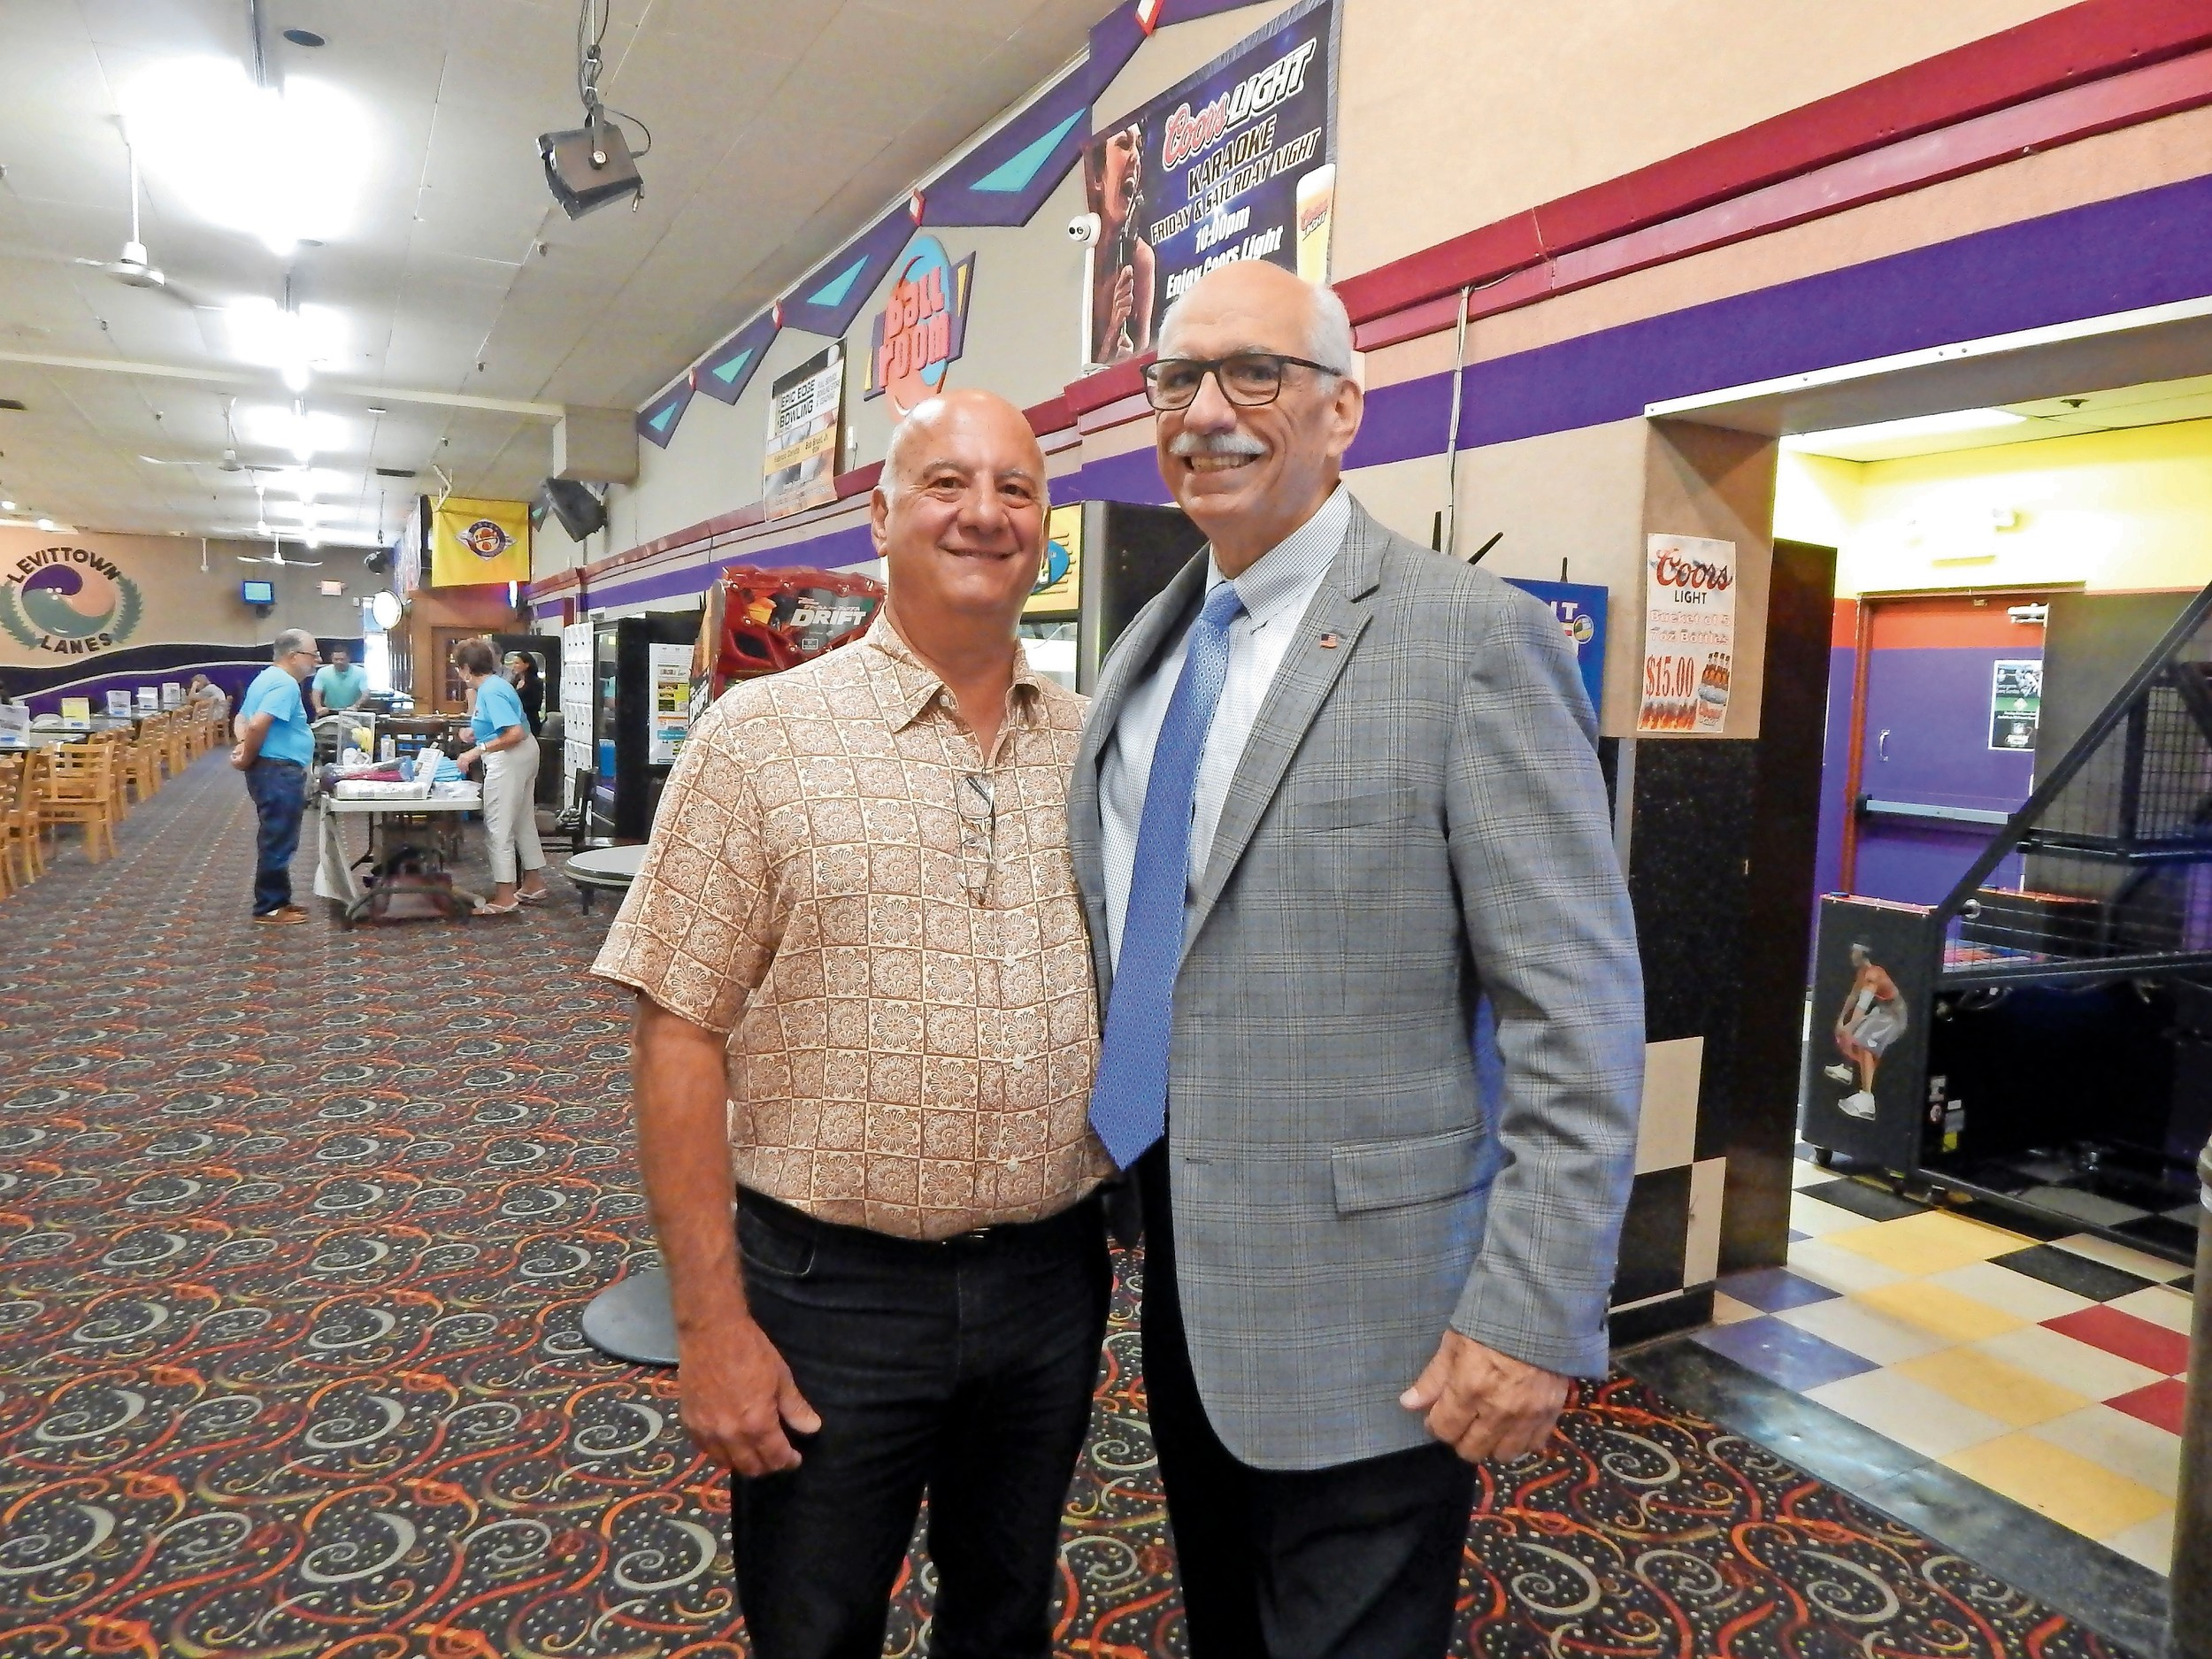 Frank Mormando, left, owner of Levittown Lanes, and Hempstead Town Councilman Dennis Dunne greeted residents.